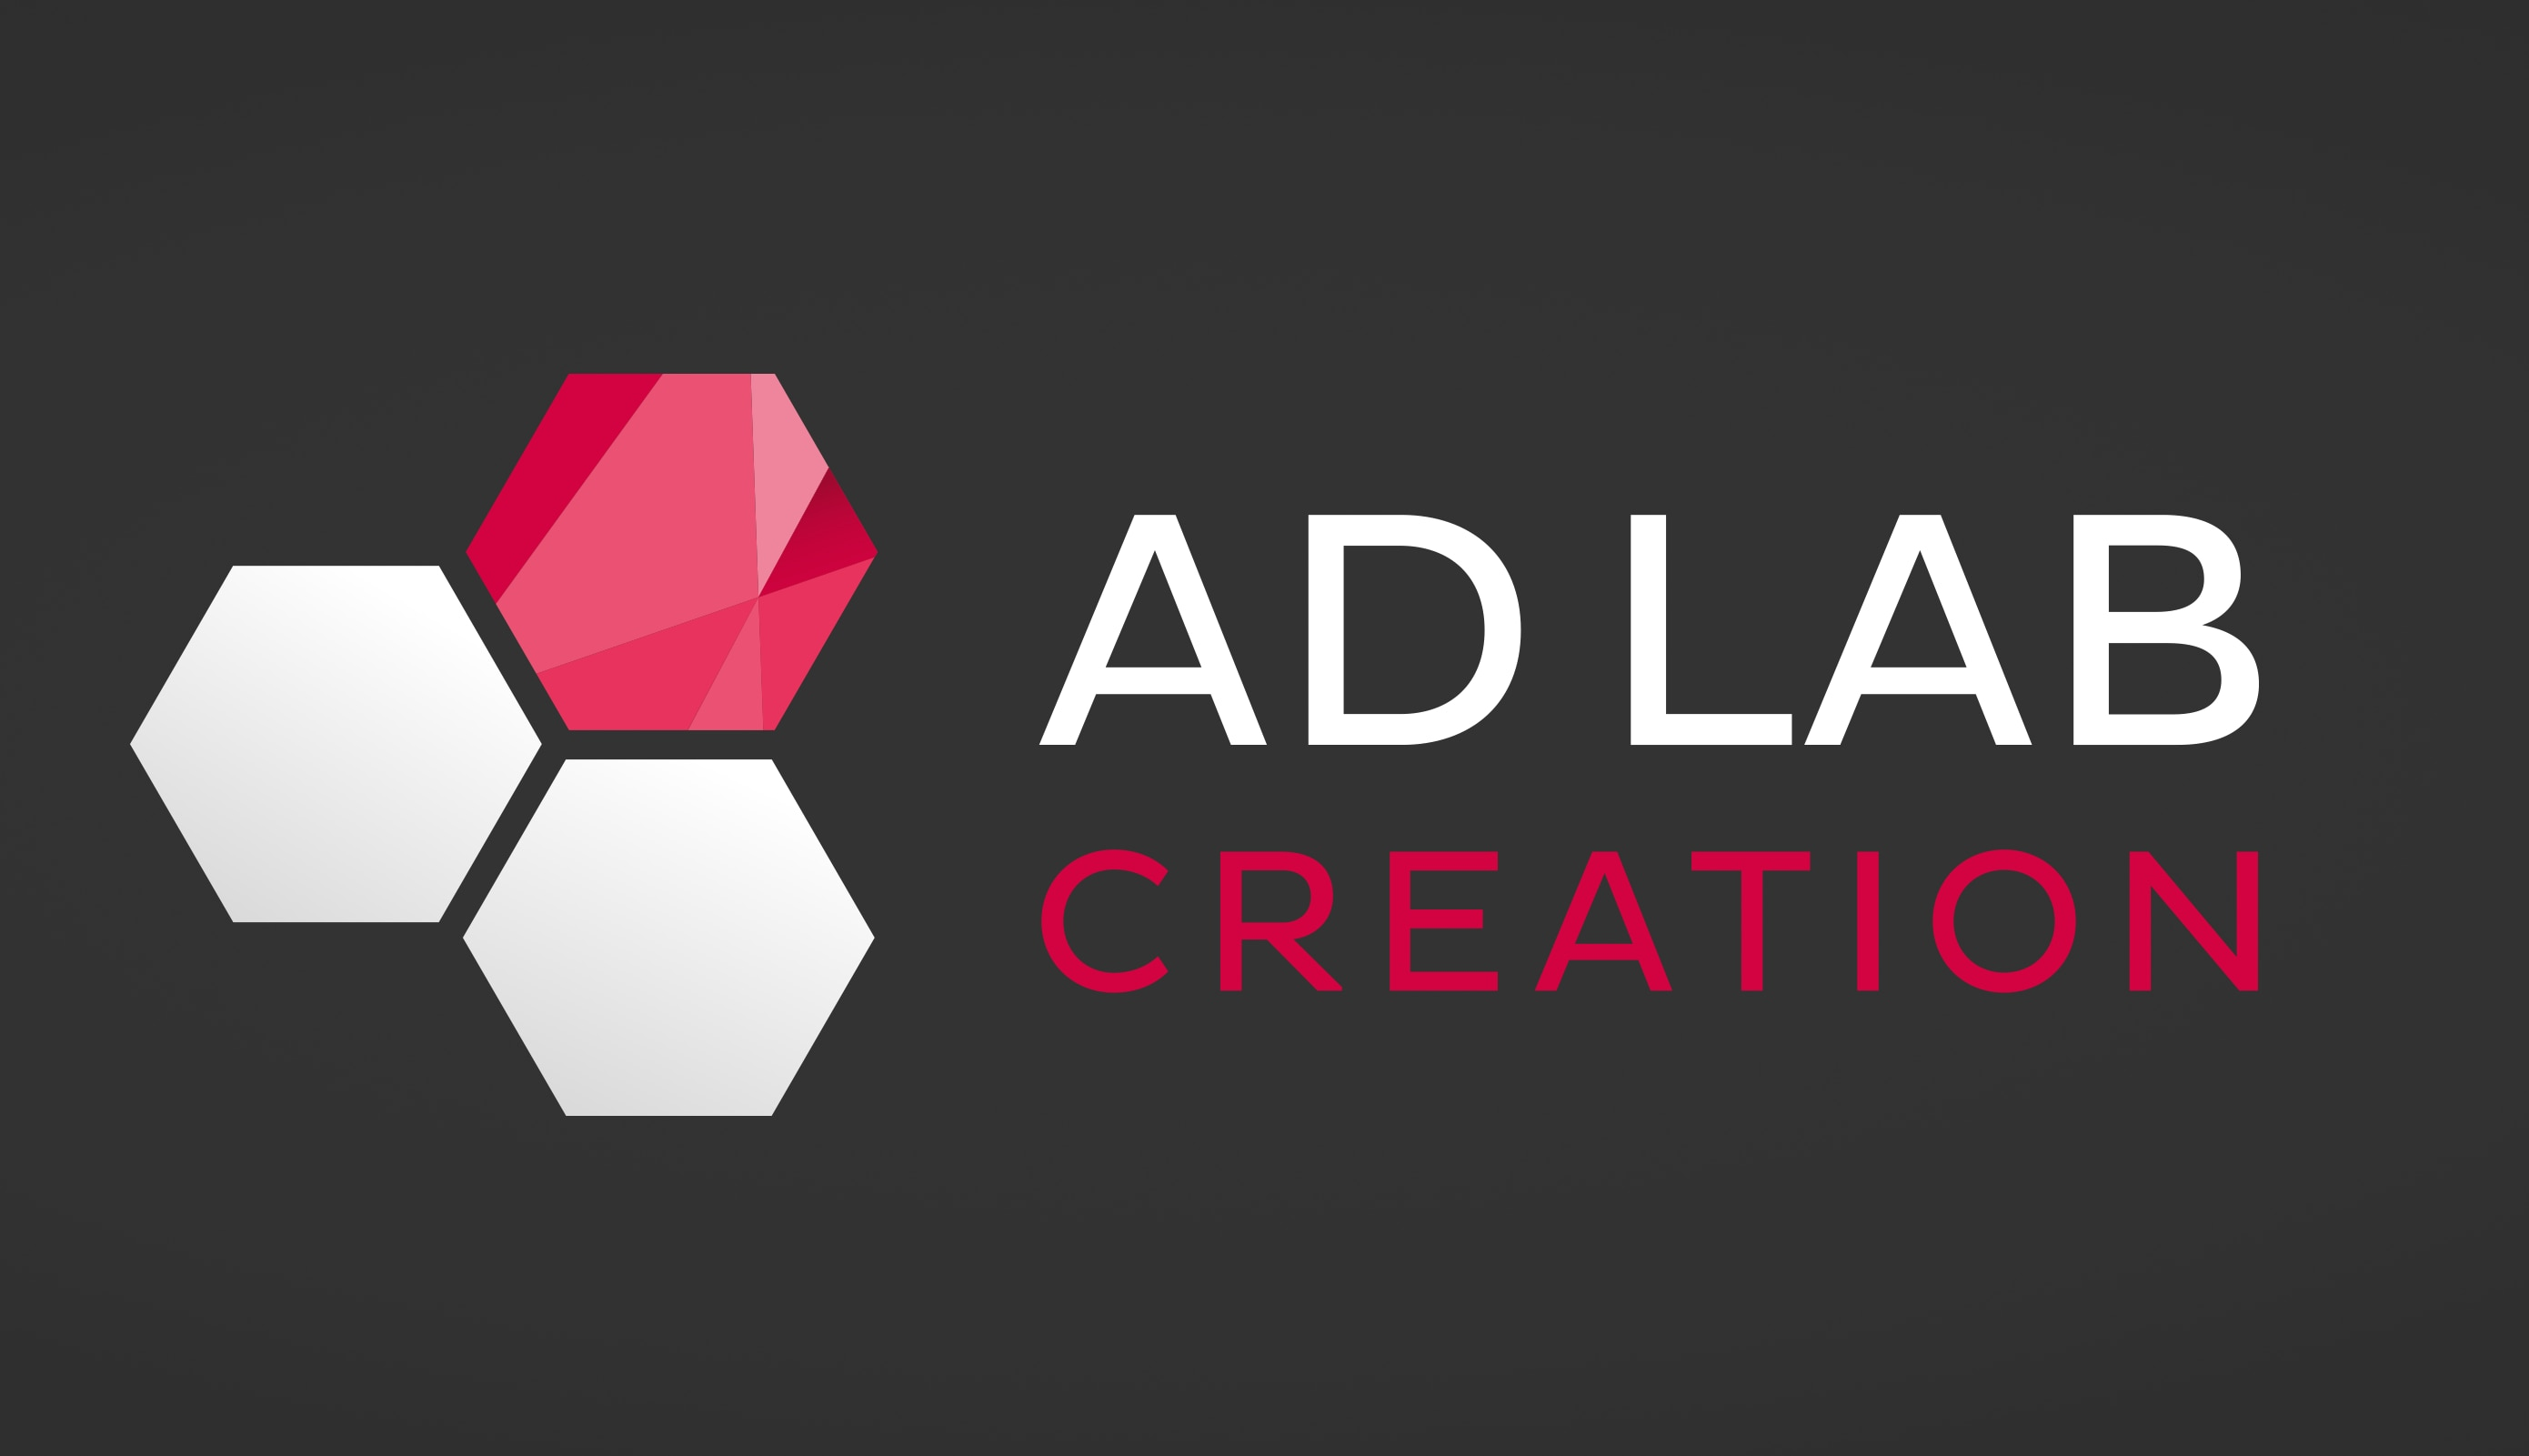 AD LAB CREATION